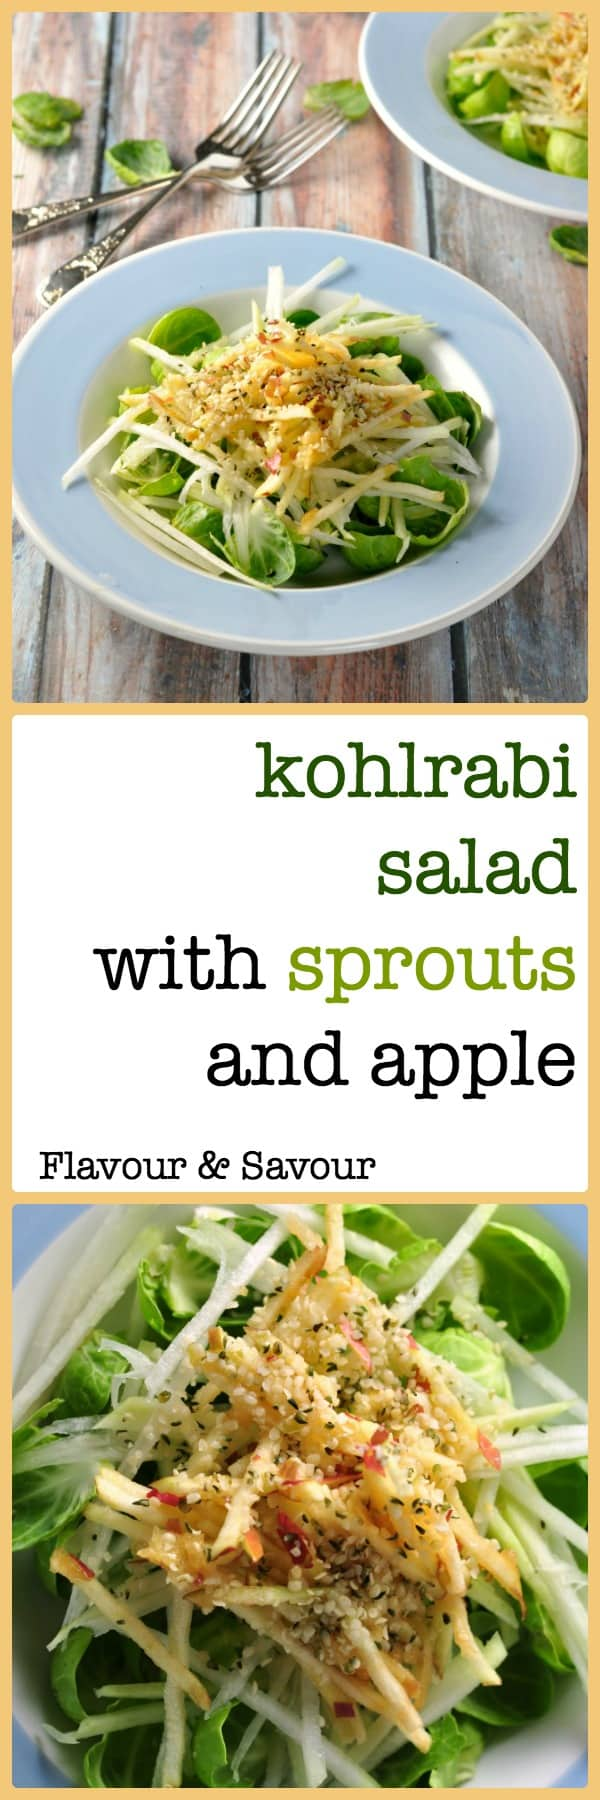 Crisp Brussel sprout leaves, crunchy kohlrabi and sweet juicy apple give all the freshness of a summertime salad on a winter day in this Kohlrabi Winter Salad.